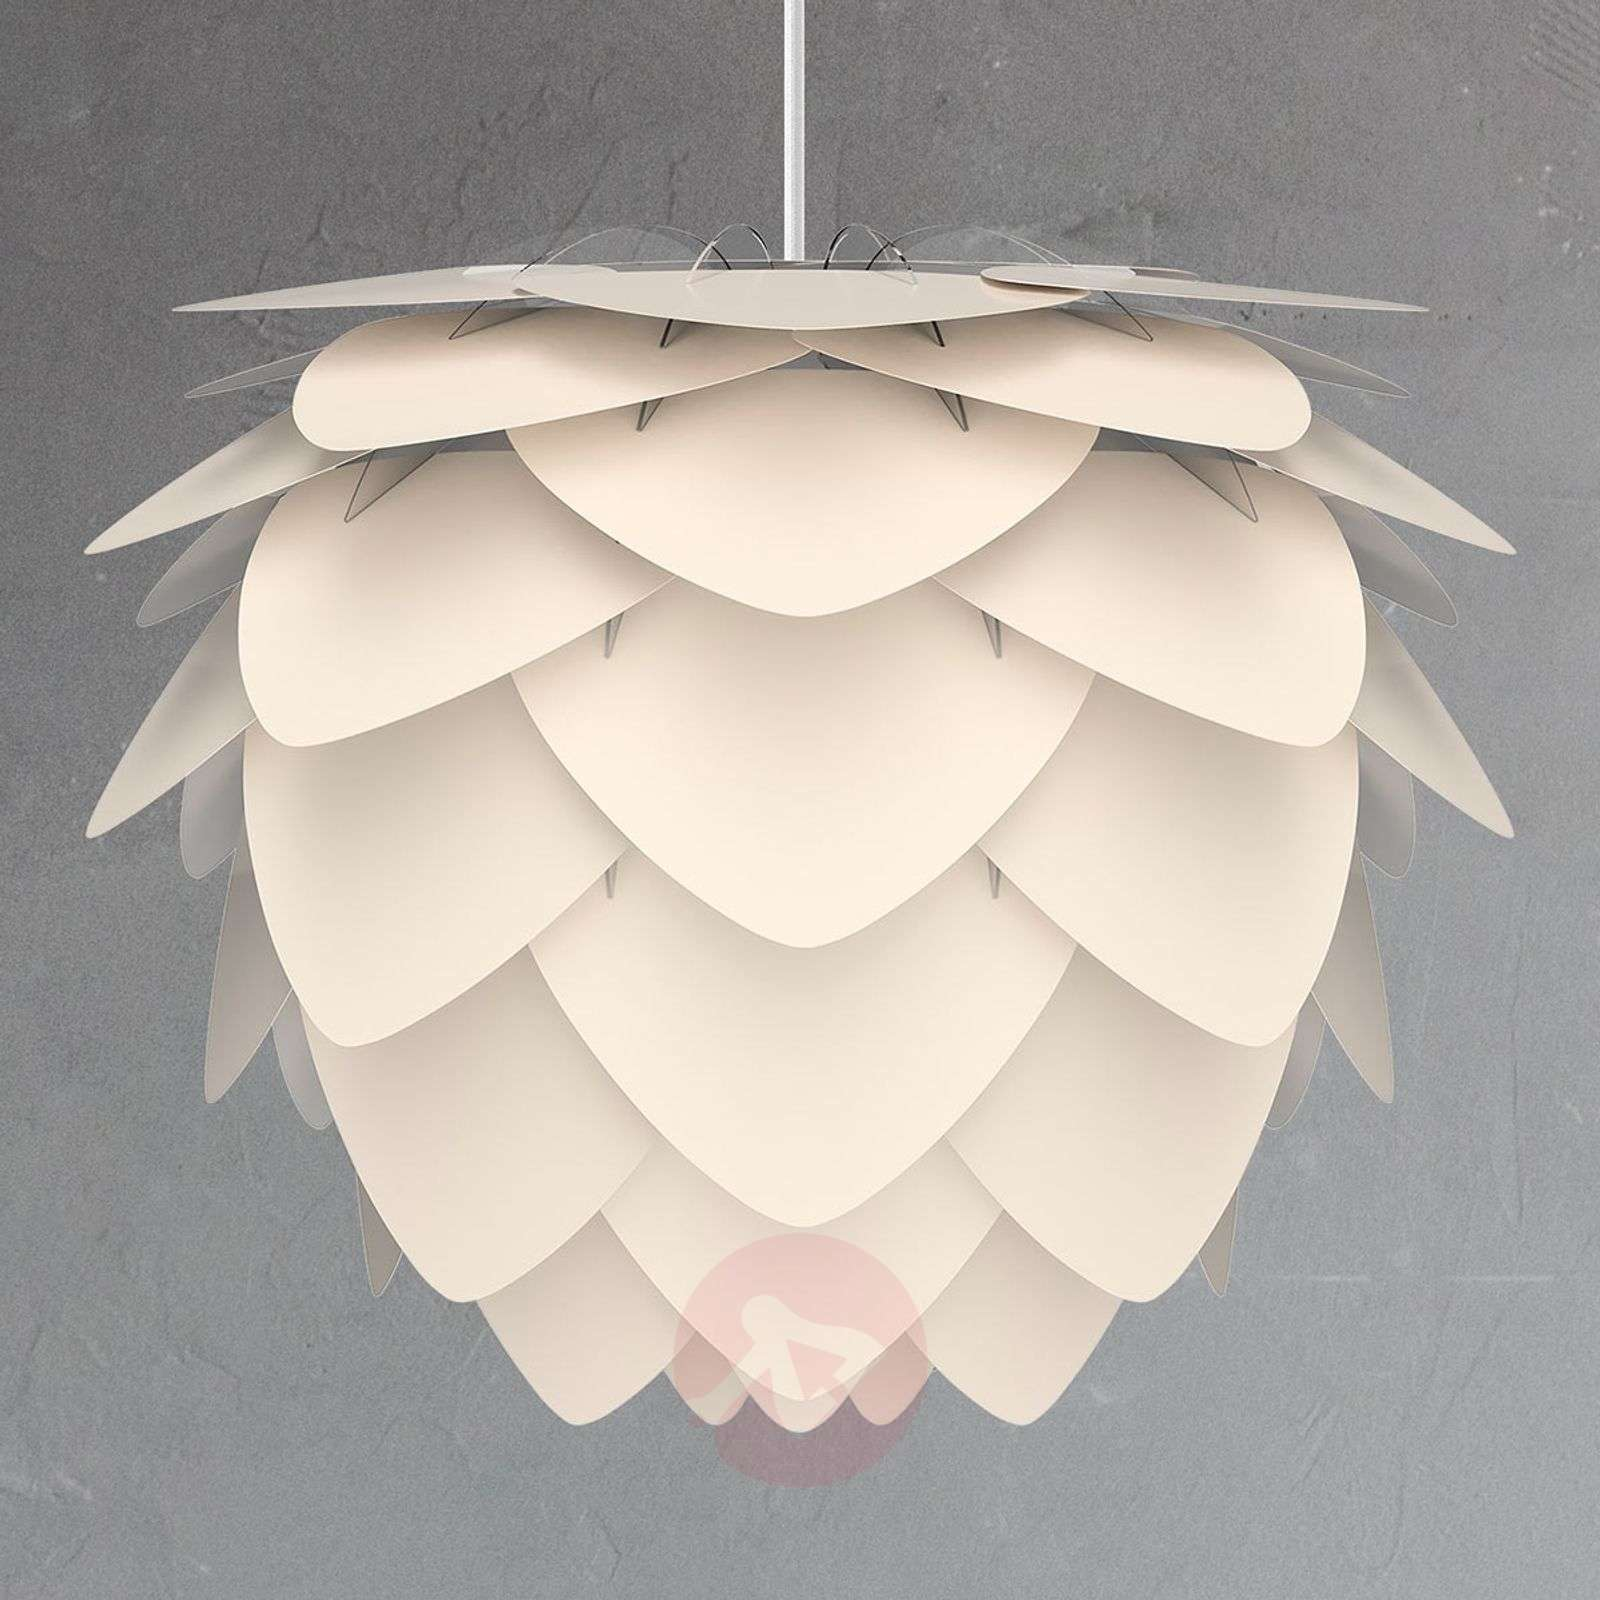 UMAGE Aluvia mini hanging light, mother-of-pearl-9521053-01